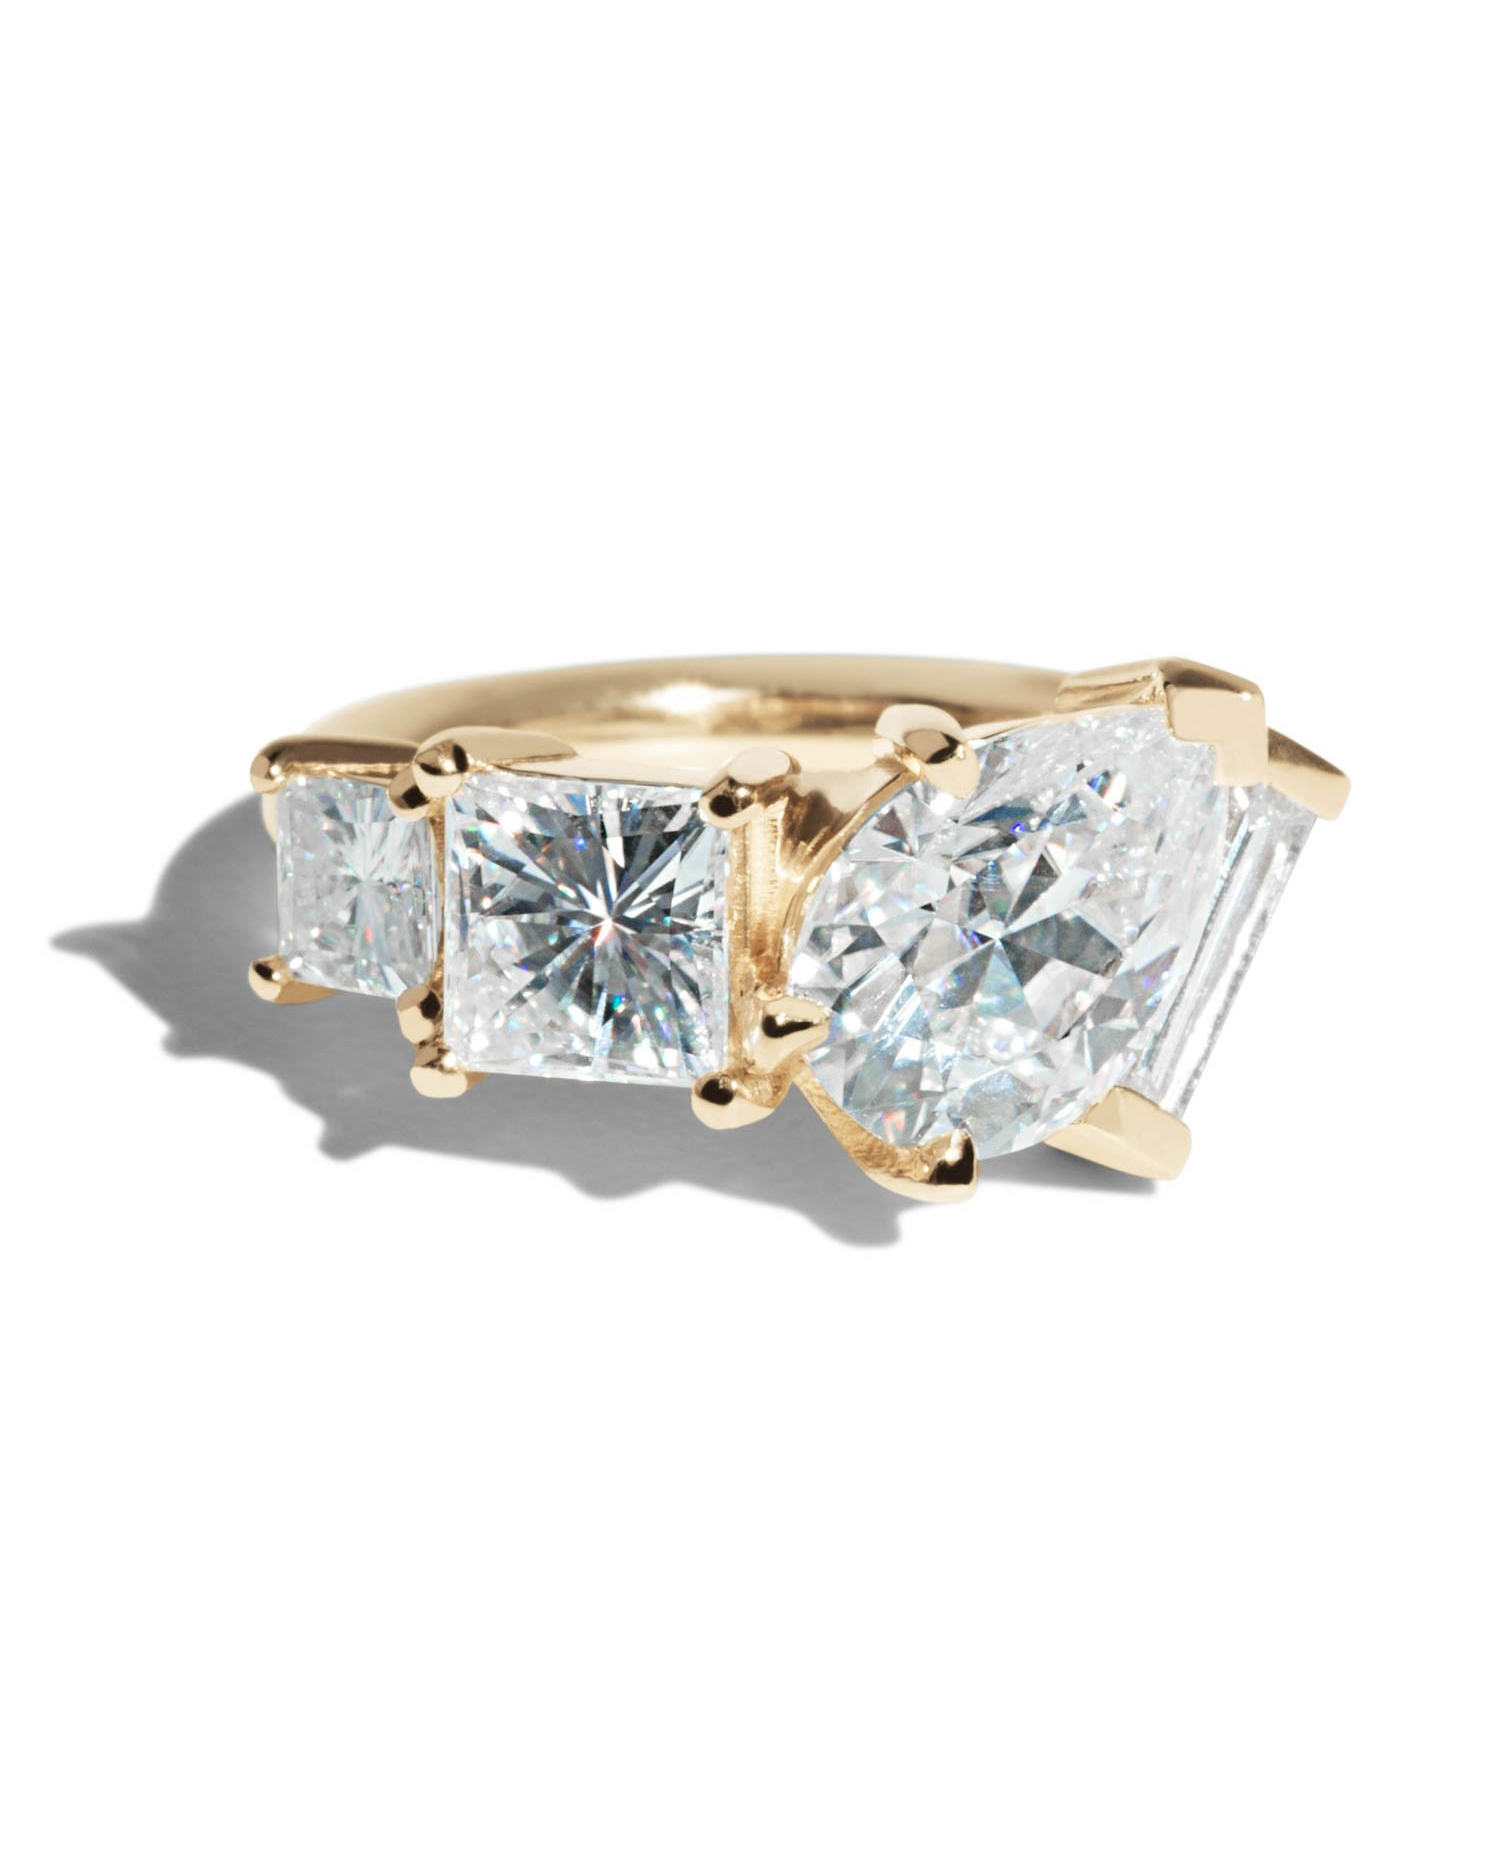 Bario Neal Custom Moissanite Linear Cluster Ring